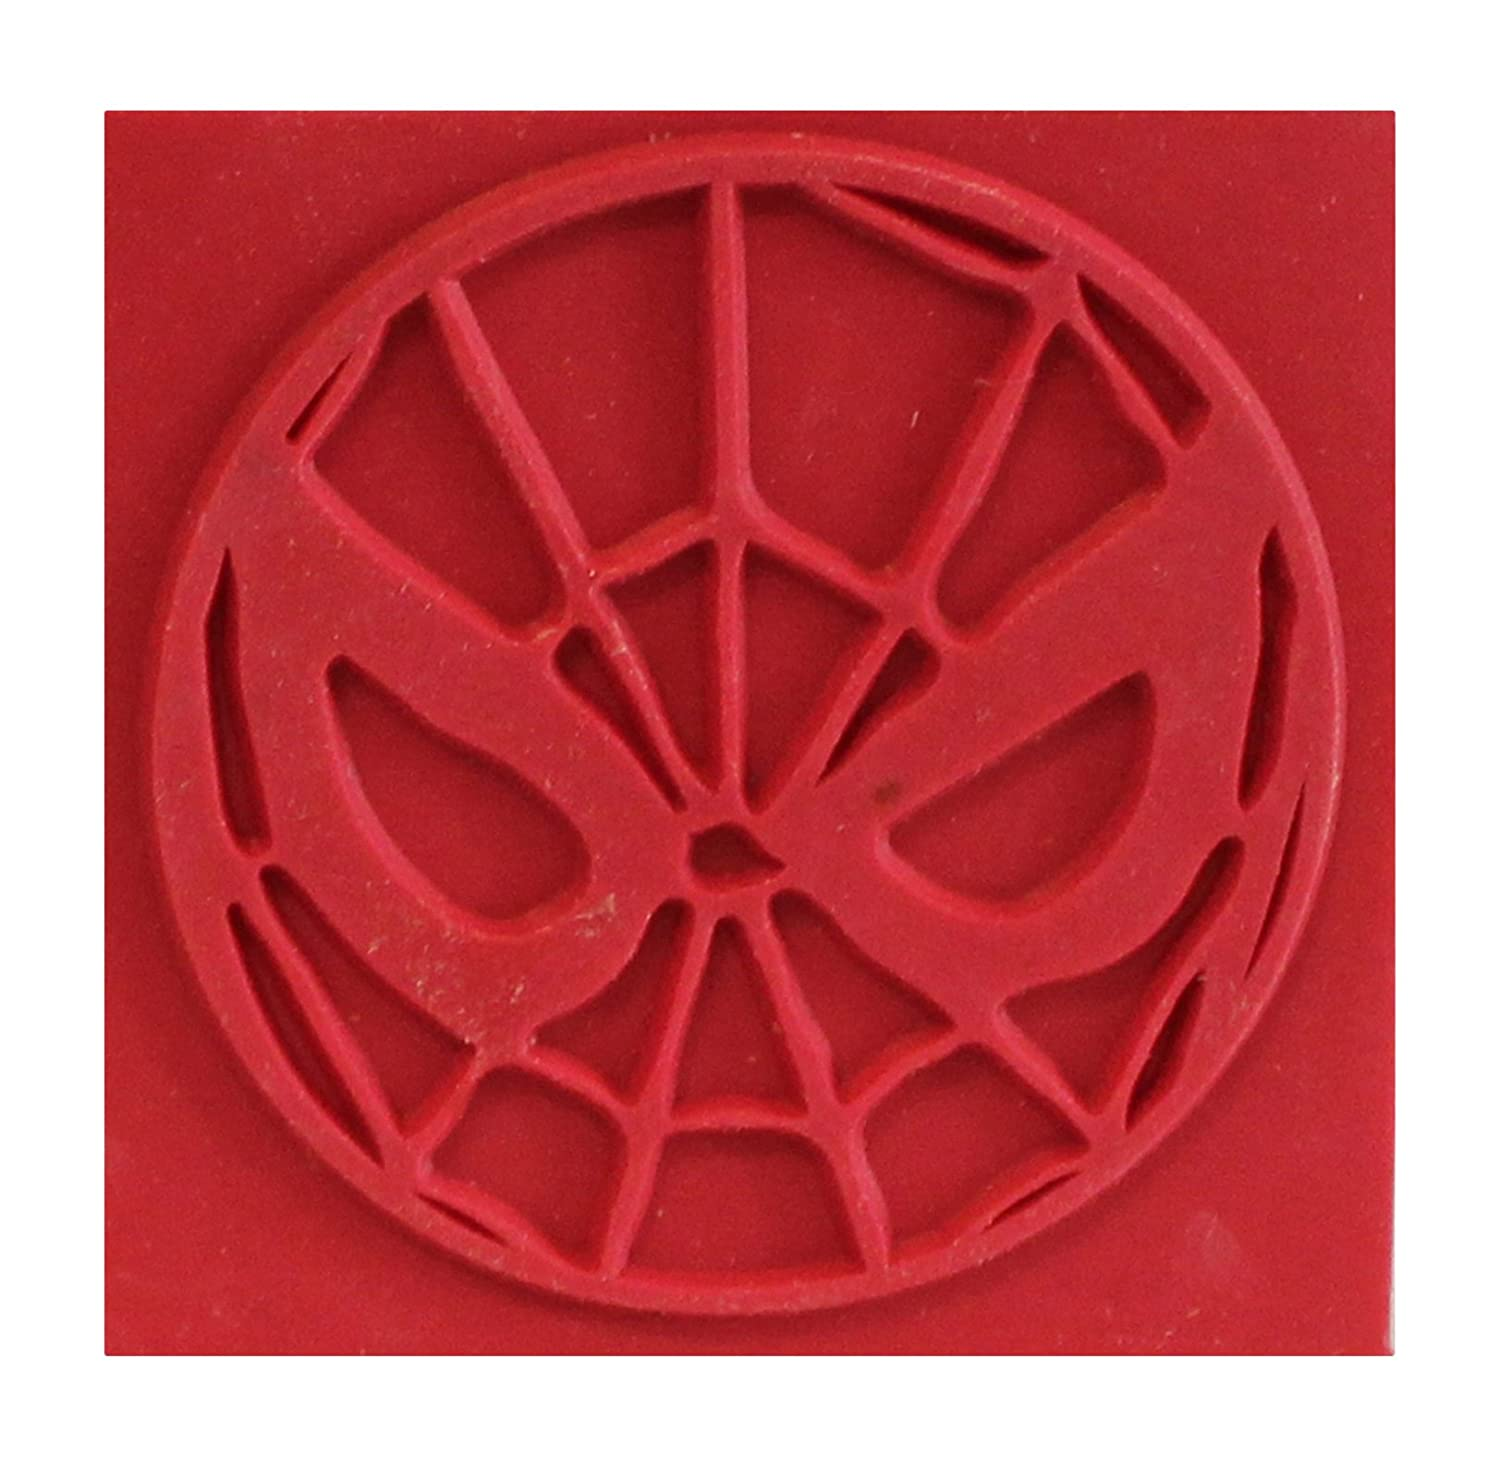 Rubber Stamp Marvel Comics Retro Spiderman Spidey Icon